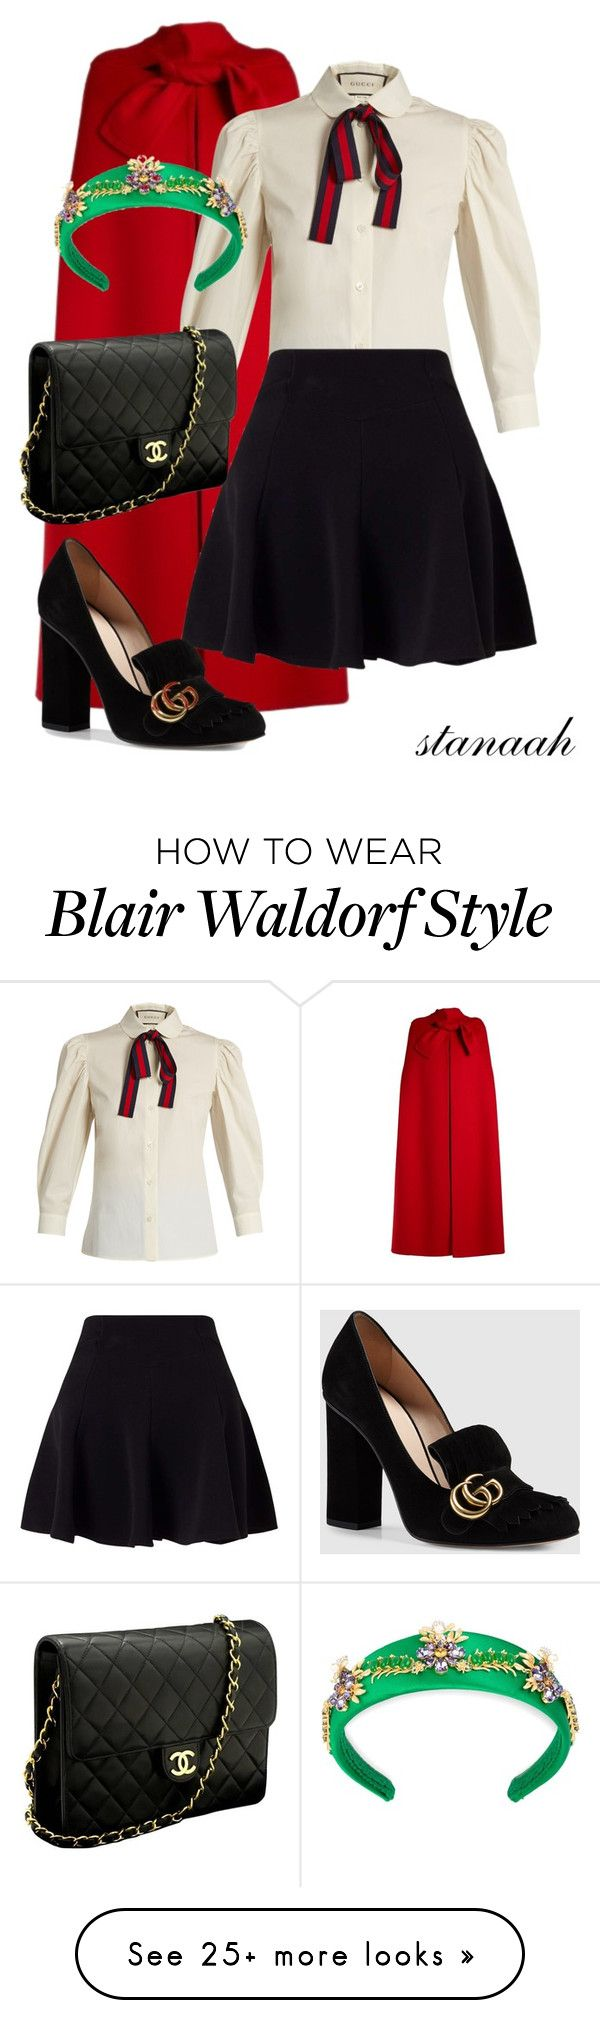 """""""blair waldorf inspired"""" by s-arsenic on Polyvore featuring Valentino, Gucci, Miss Selfridge, Dolce&Gabbana and Chanel"""